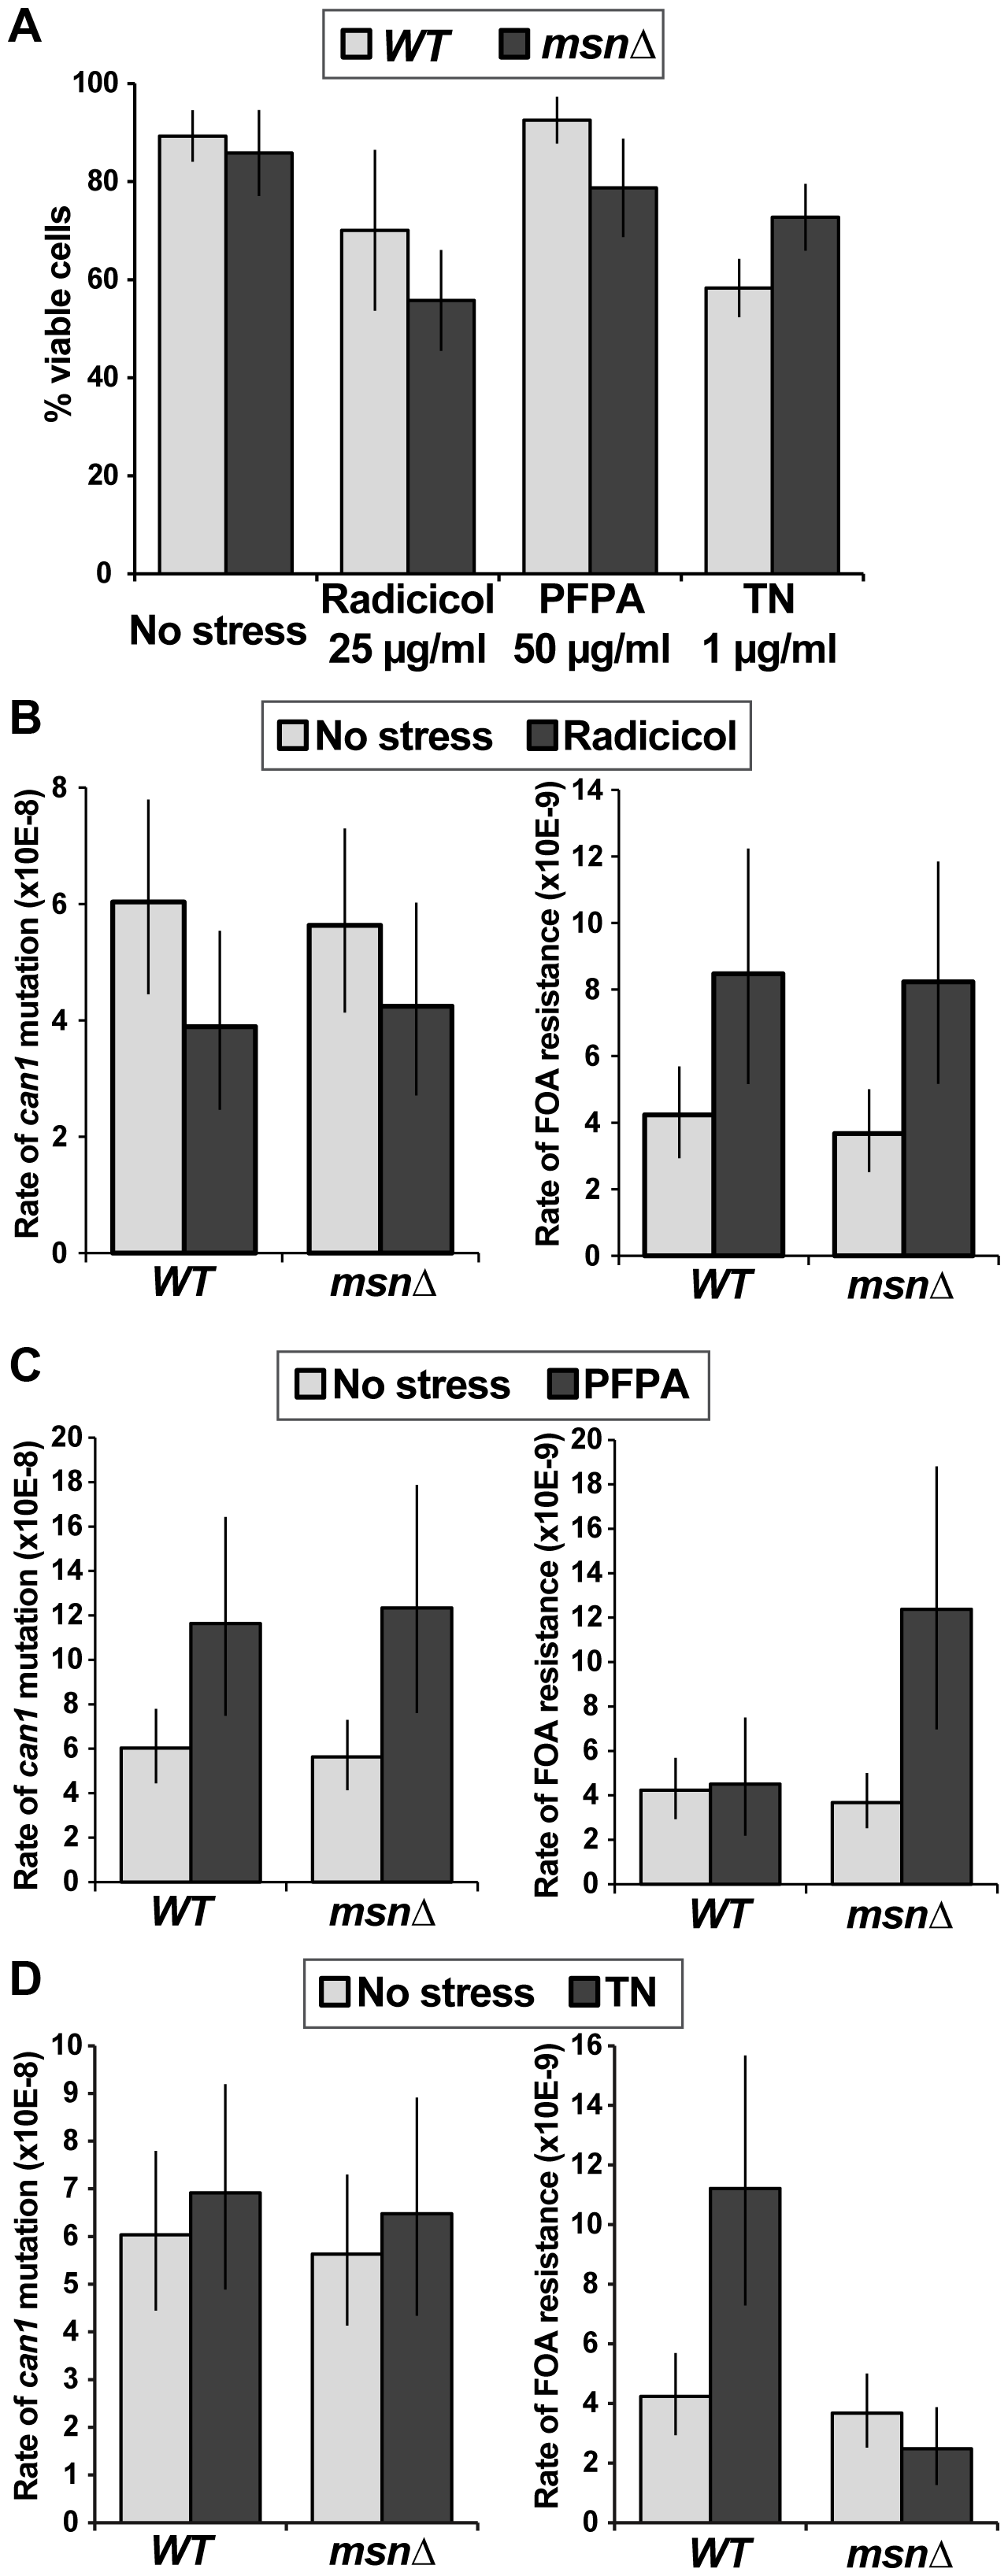 Different types of proteotoxic stress have different consequences on promoting formation canavanine-resistant versus FOA-resistant mutants and differentially involve Msn2-Msn4.